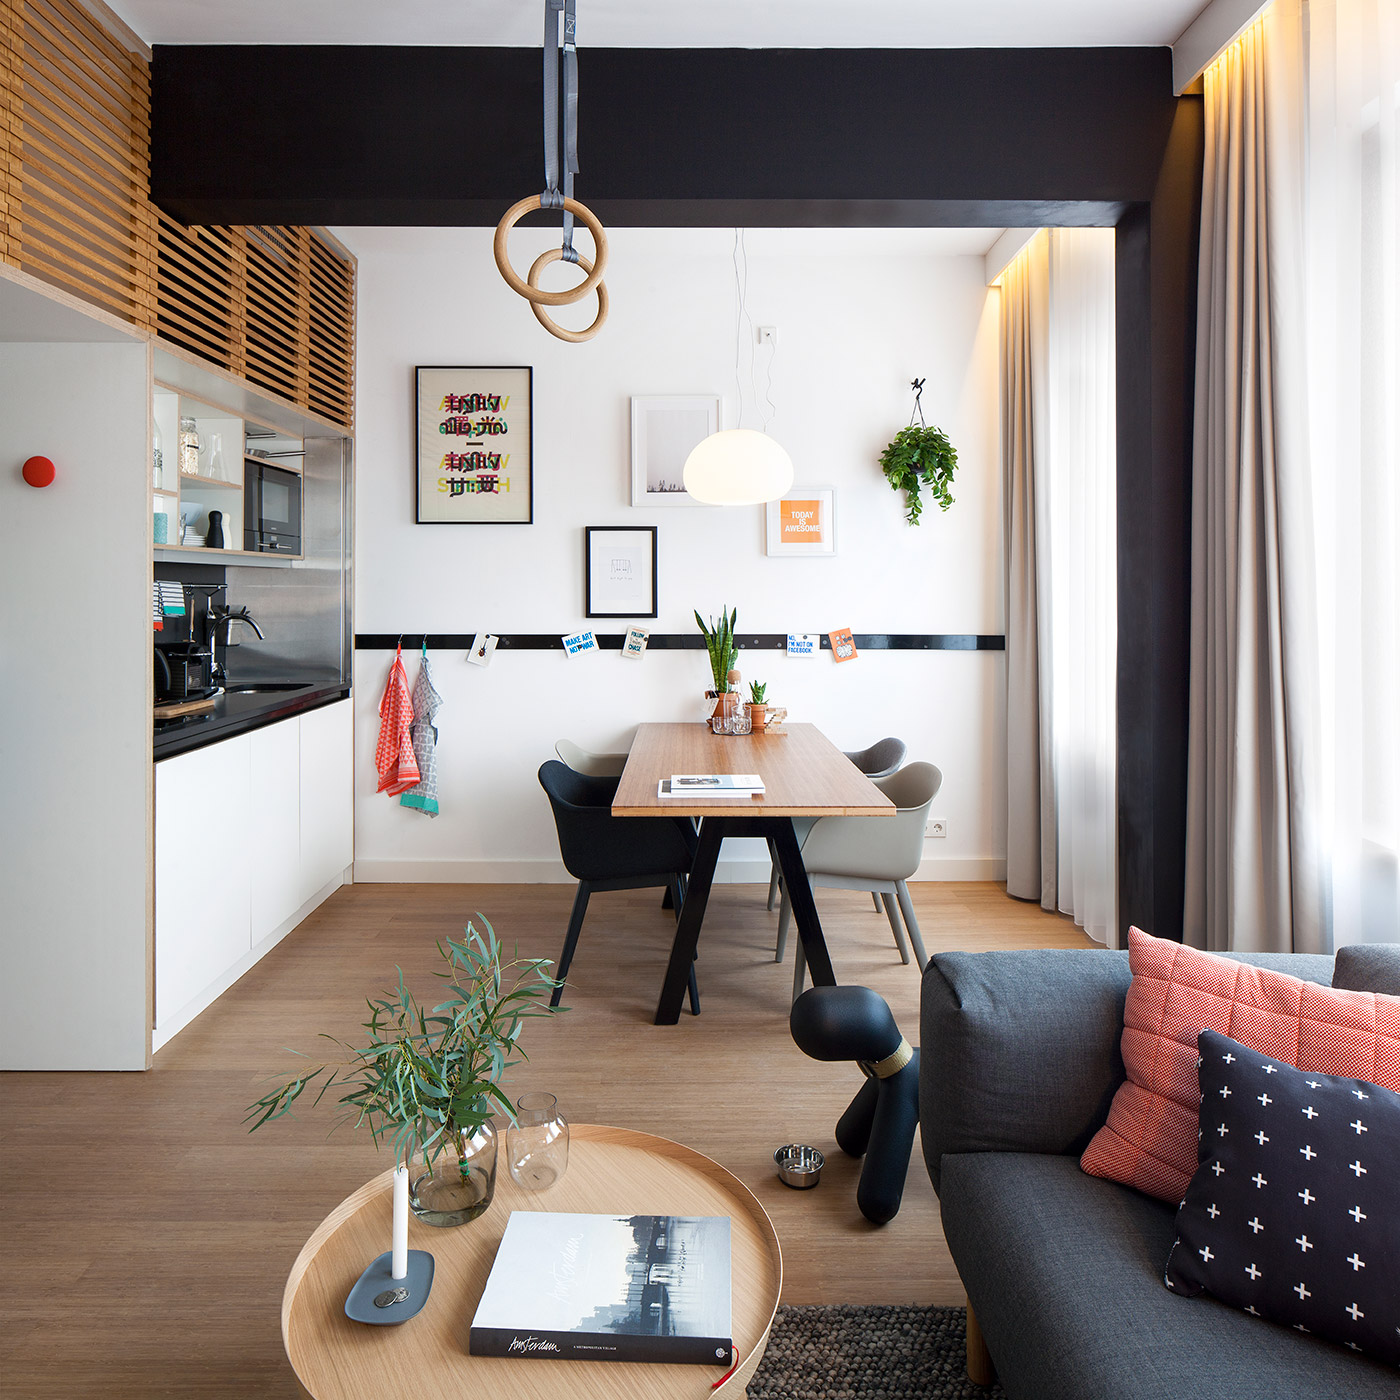 4 awesome small studio apartments with lofted beds. Black Bedroom Furniture Sets. Home Design Ideas